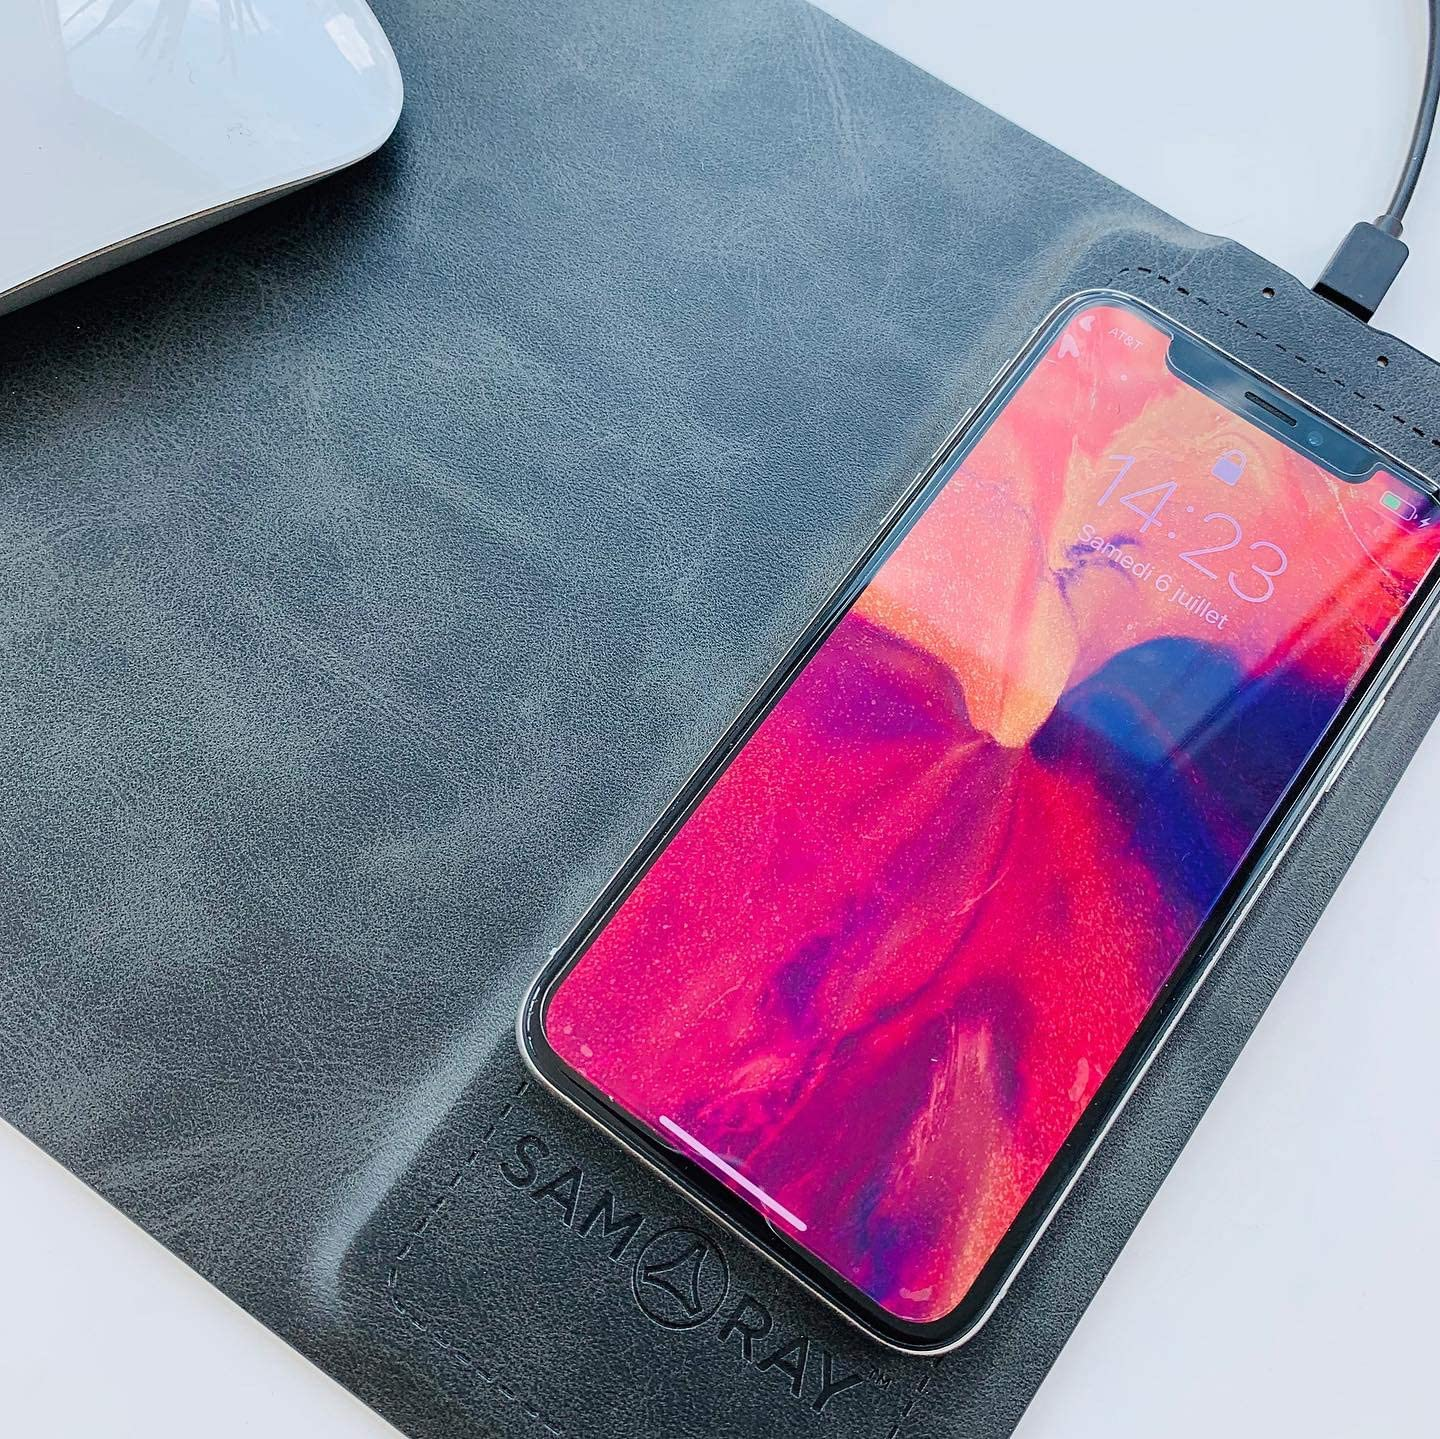 7,5W for iPhone Xs Max//XR//X//XS//8//8 Plus Devices Black Compatible Samsung Galaxy S9 S8 S7 Qi Wireless Charging Mouse Pad 10W SAMARAY 2 in 1 Wireless Charger